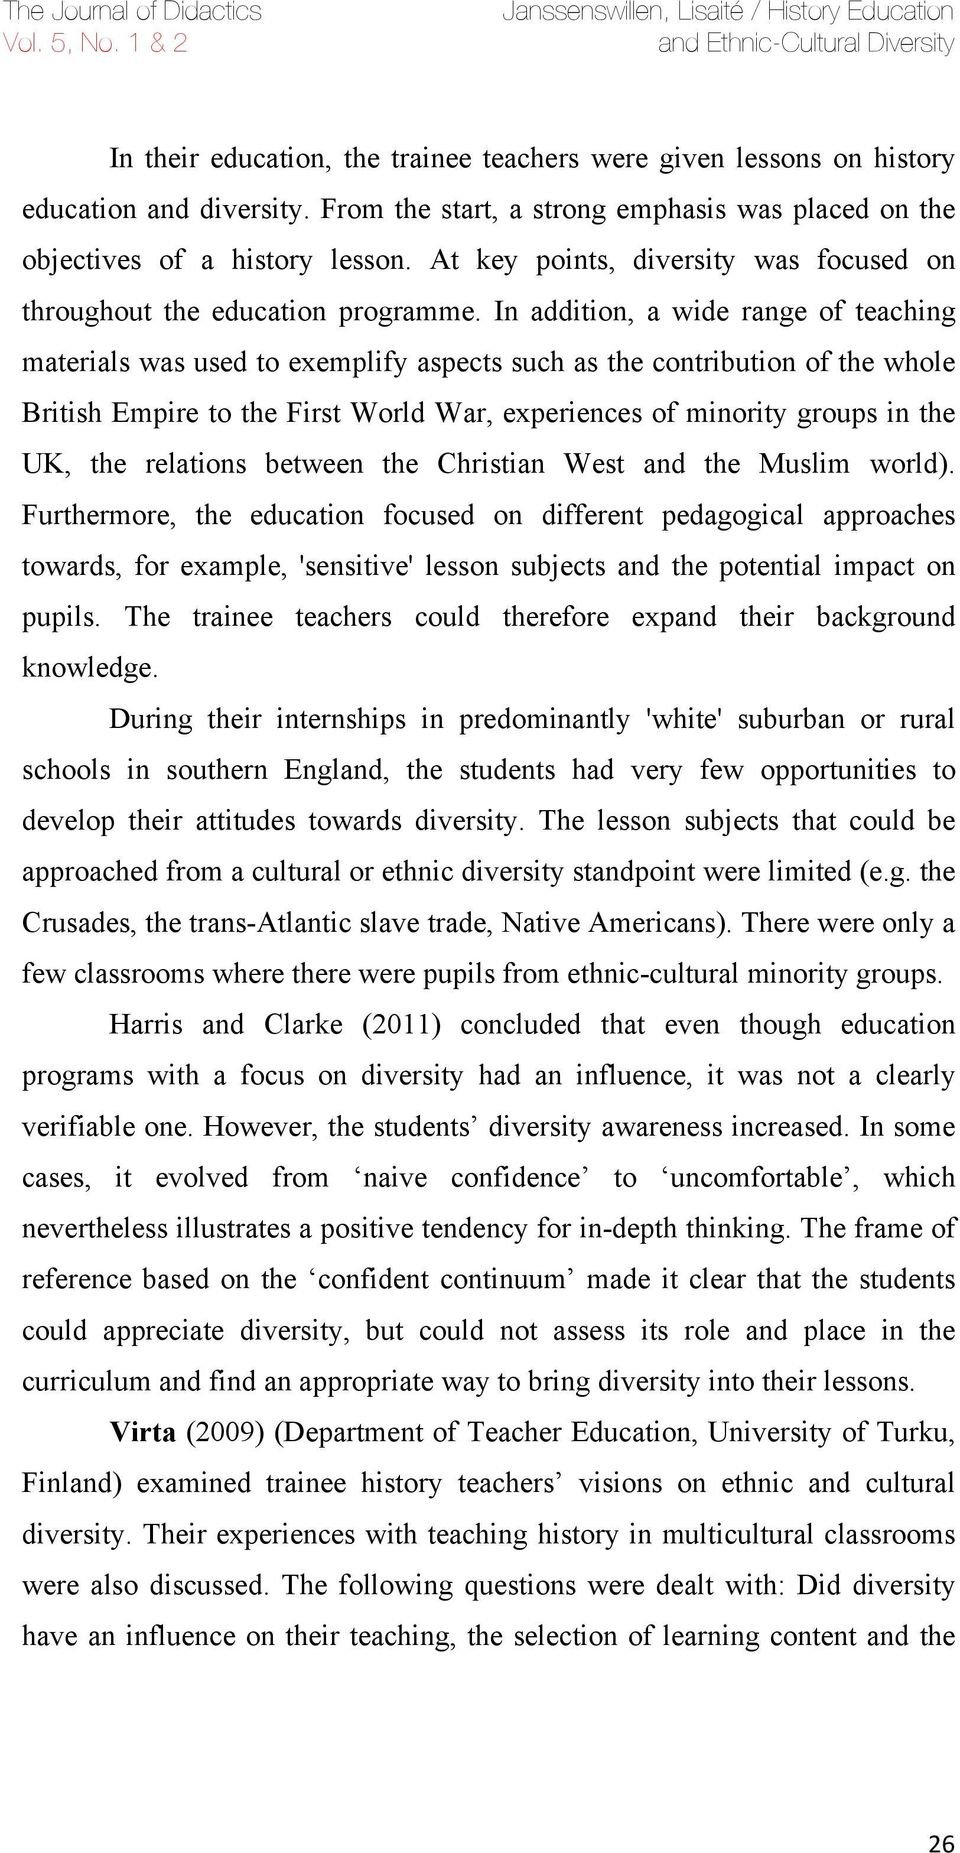 Multicultural Education in the US Schools&nbspEssay